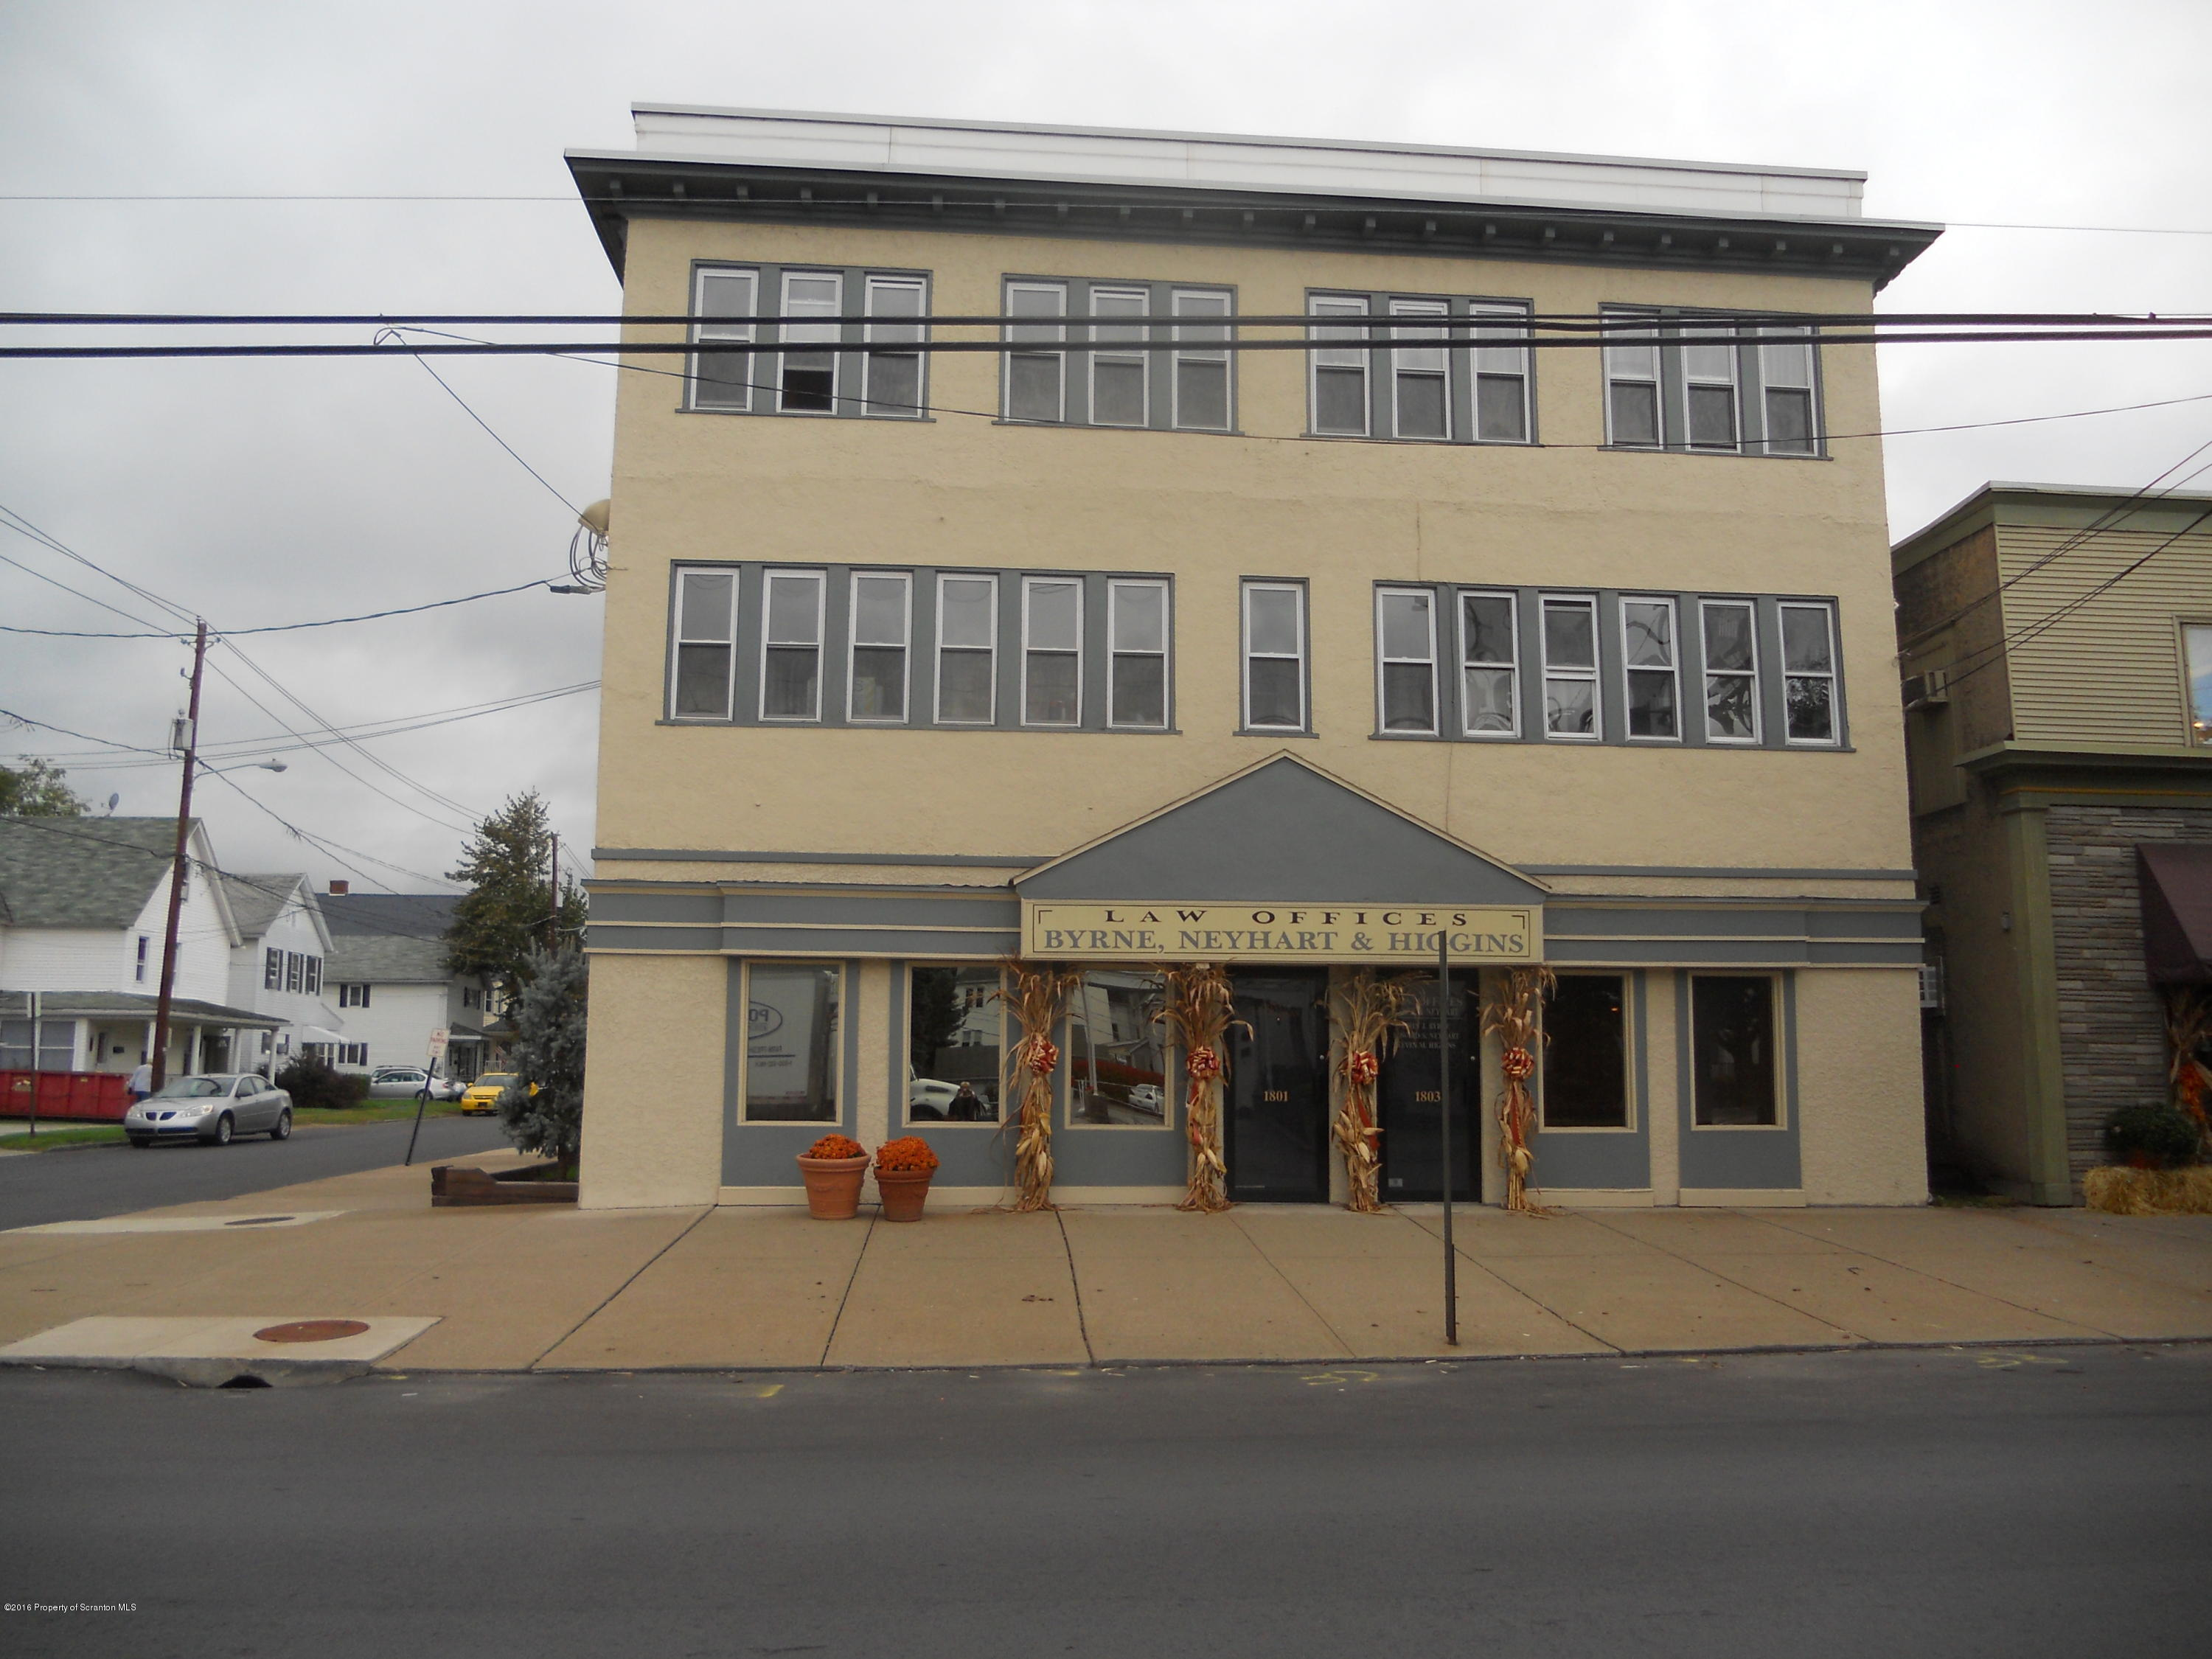 1803 SANDERSON AVE, Scranton, Pennsylvania 18509, ,2 BathroomsBathrooms,Commercial,For Lease,SANDERSON,16-4850